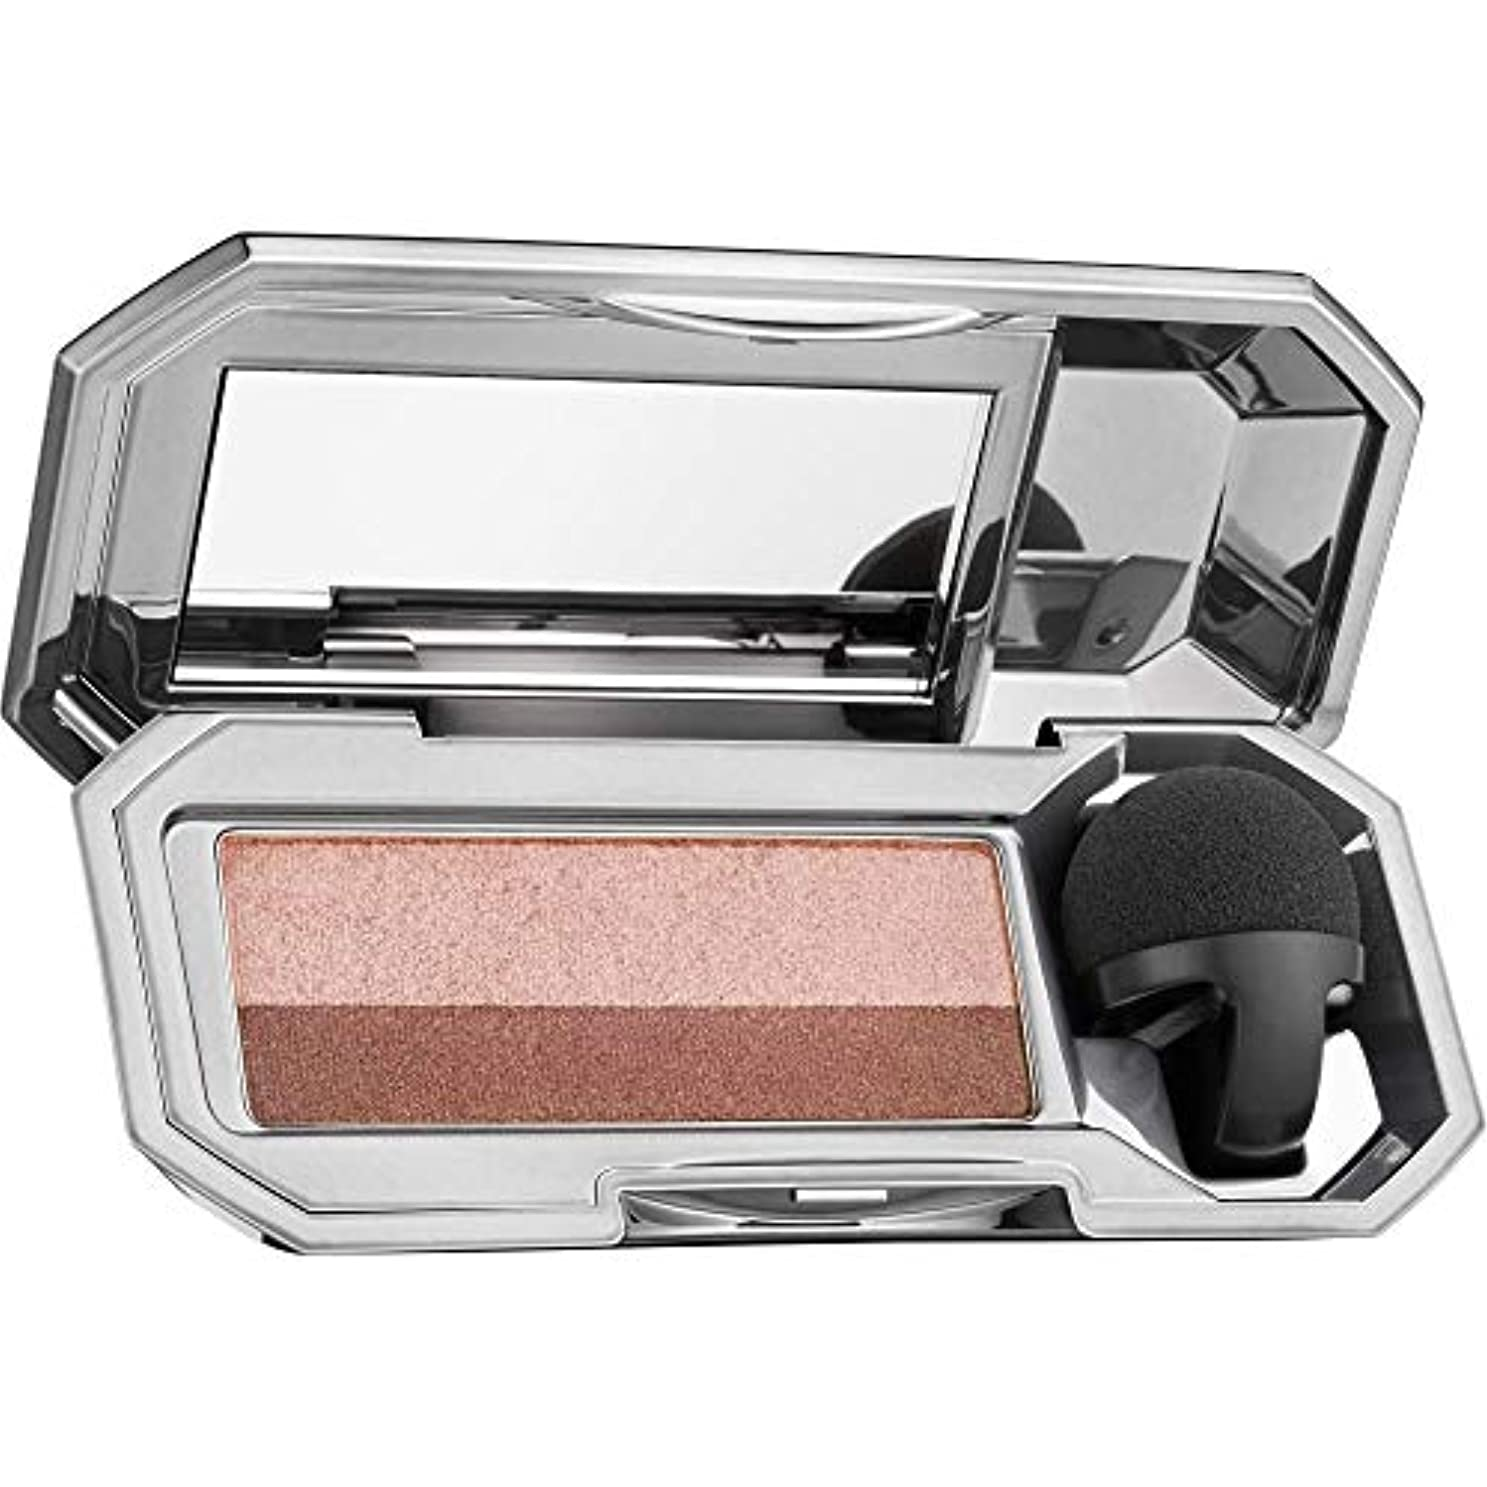 事前に未亡人十分BENEFIT They're real! Duo Eyeshadow Blender - NAUGHTY NEUTRAL [並行輸入品]